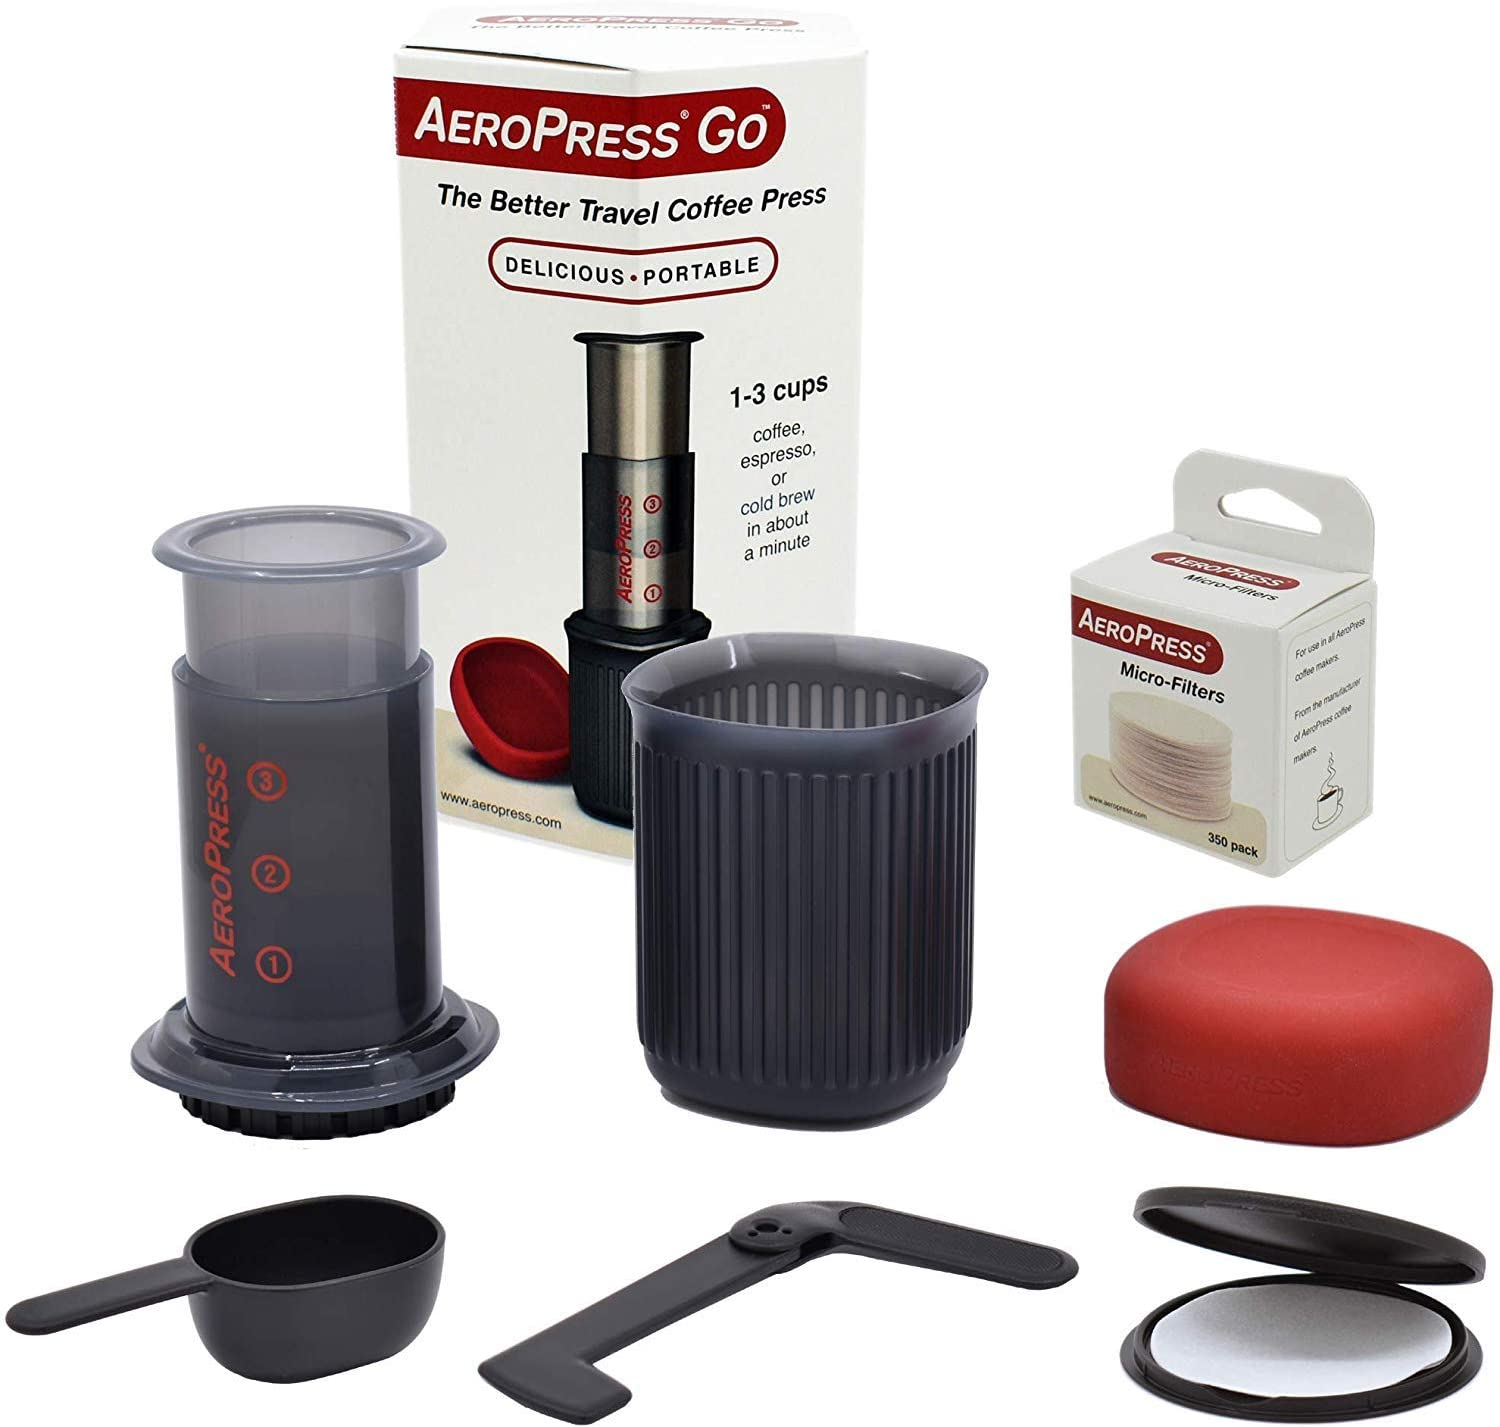 AeroPress Go Portable Travel Coffee Brewer + Coffee Beans + Free Shipping